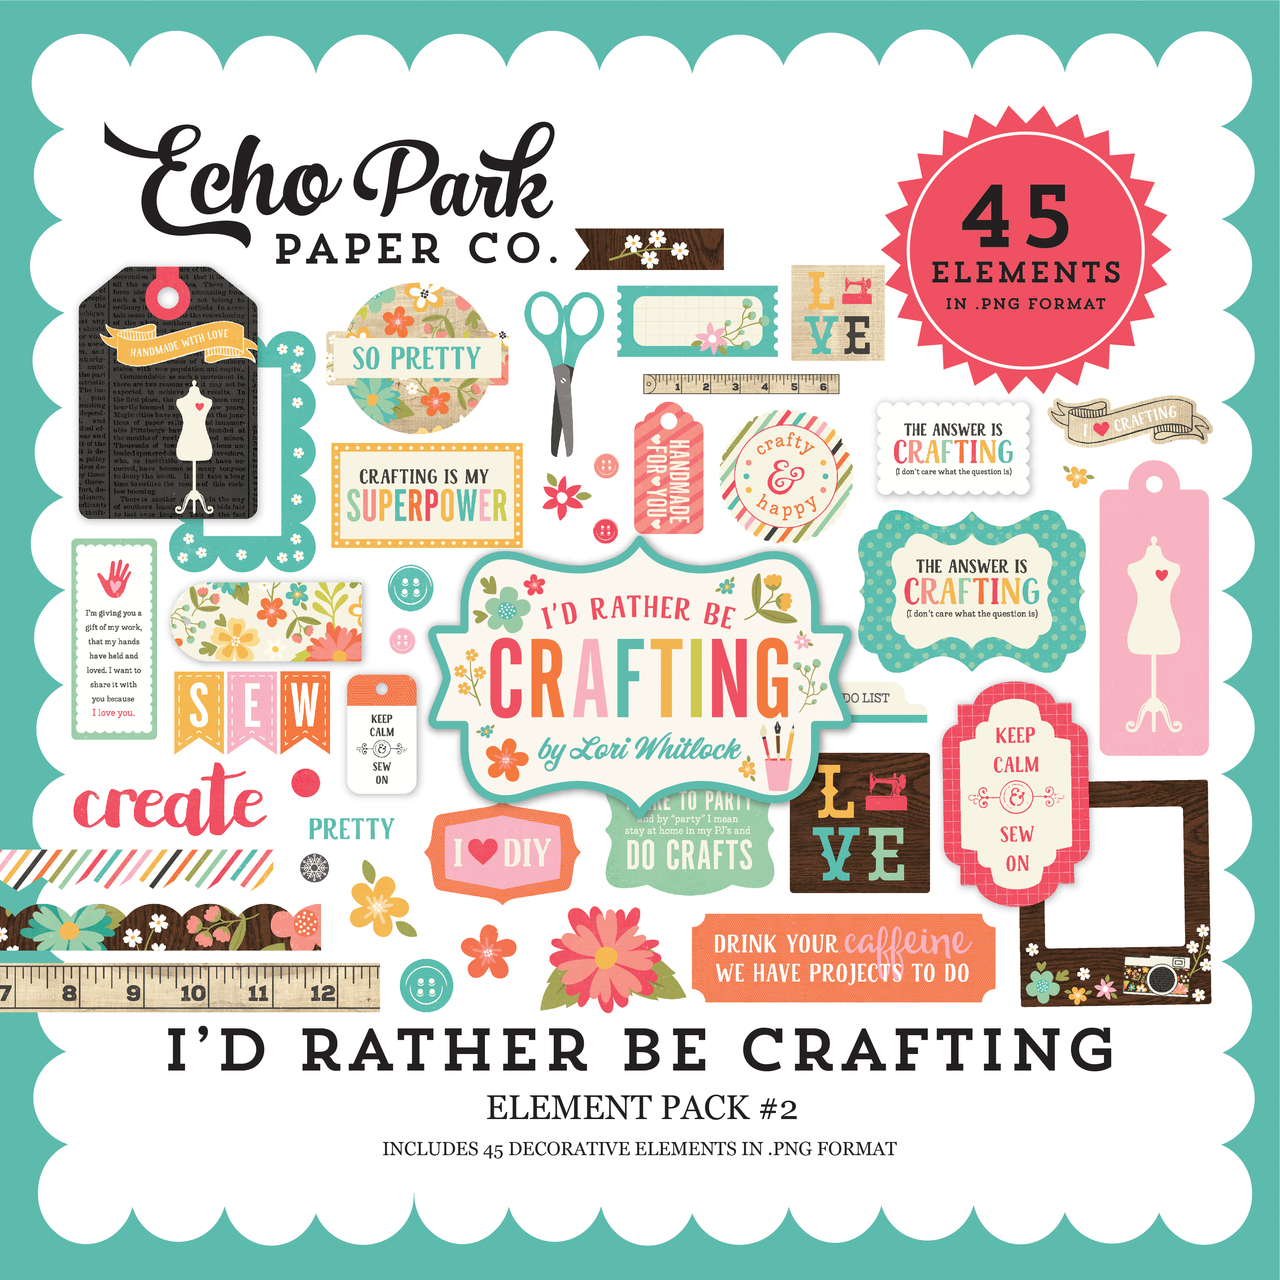 I'd Rather Be Crafting Element Pack #2